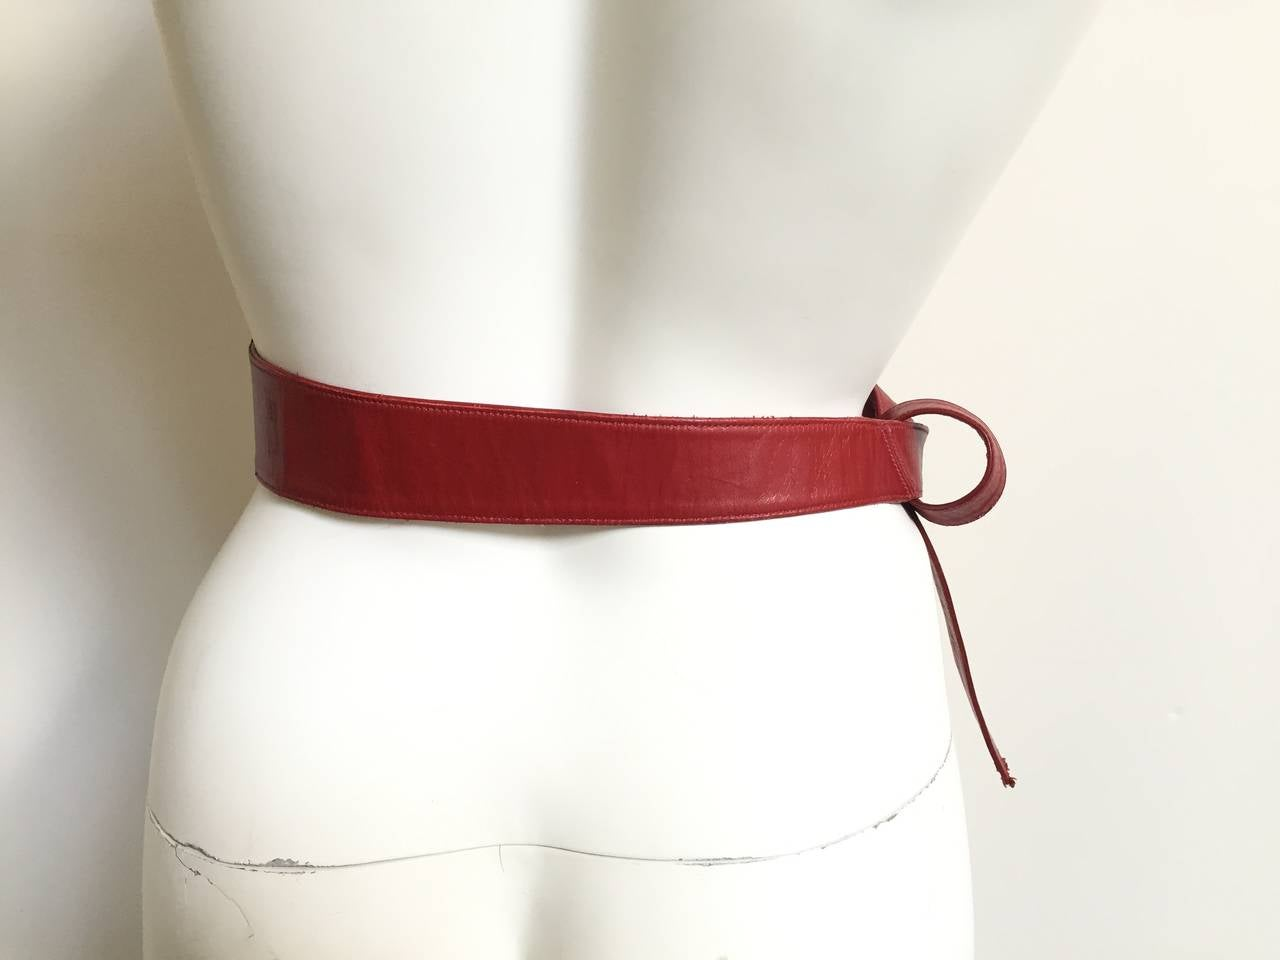 Alexis Kirk 80s red leather tie belt. 3